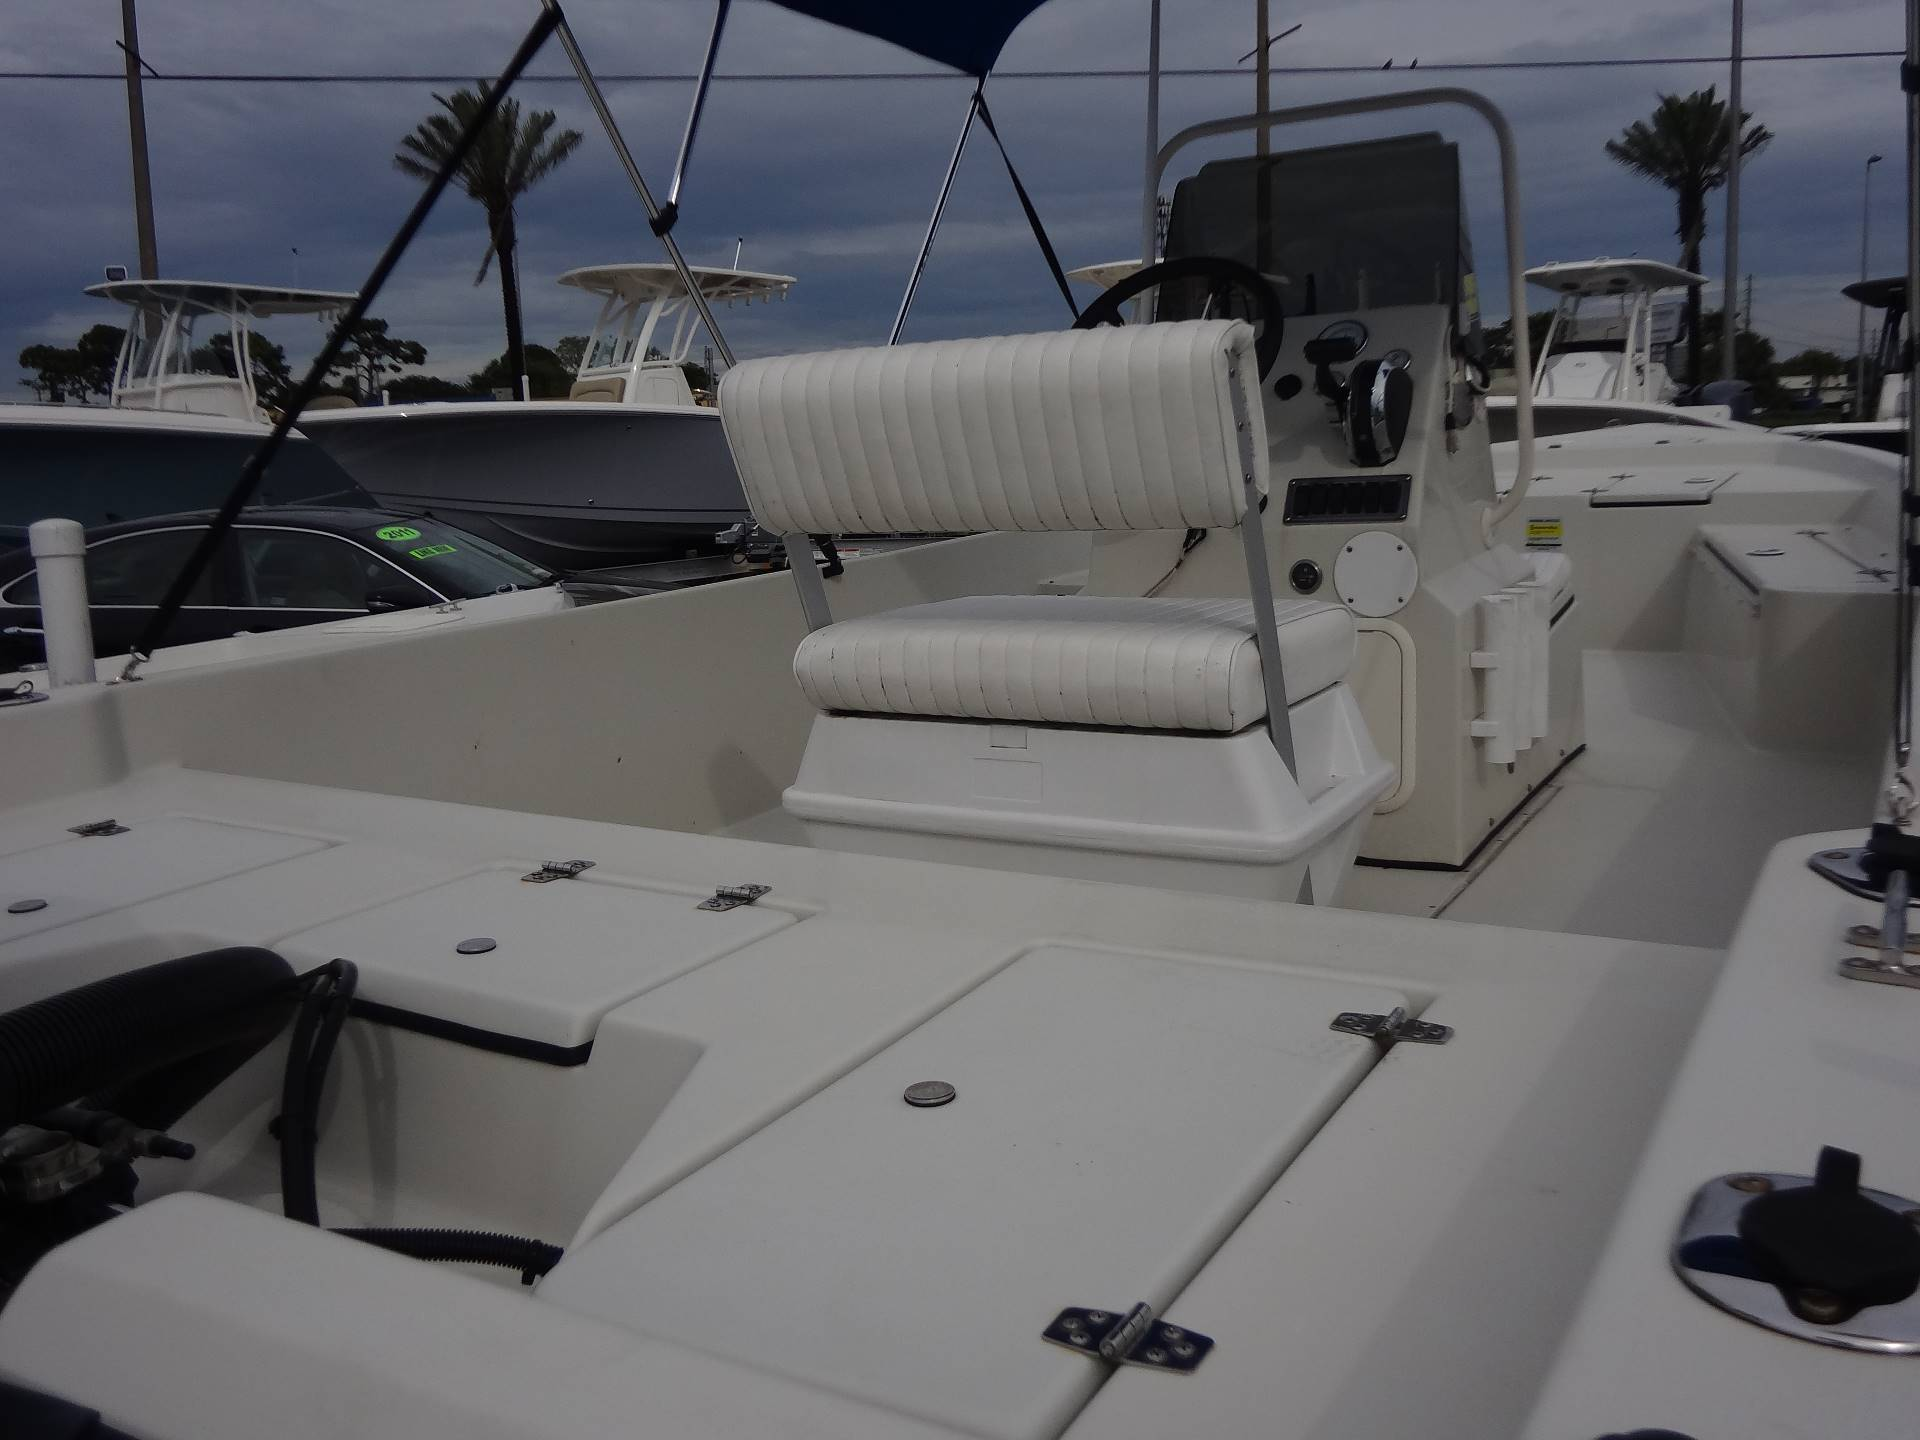 2018 Stott Craft SCV 2160 in Holiday, Florida - Photo 15